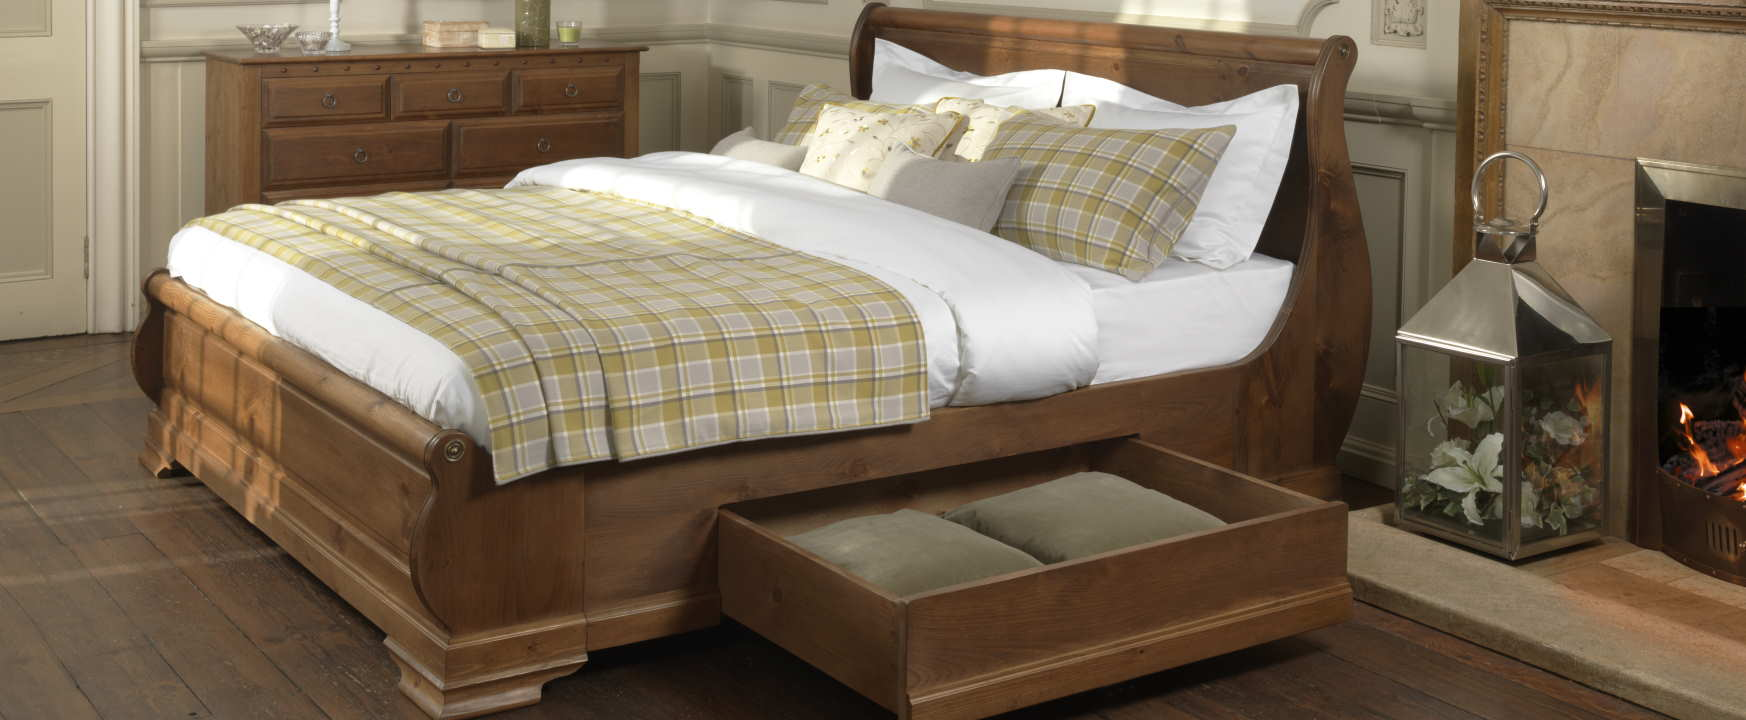 Solid Wood Beds From Revival Beds | Handmade Beds